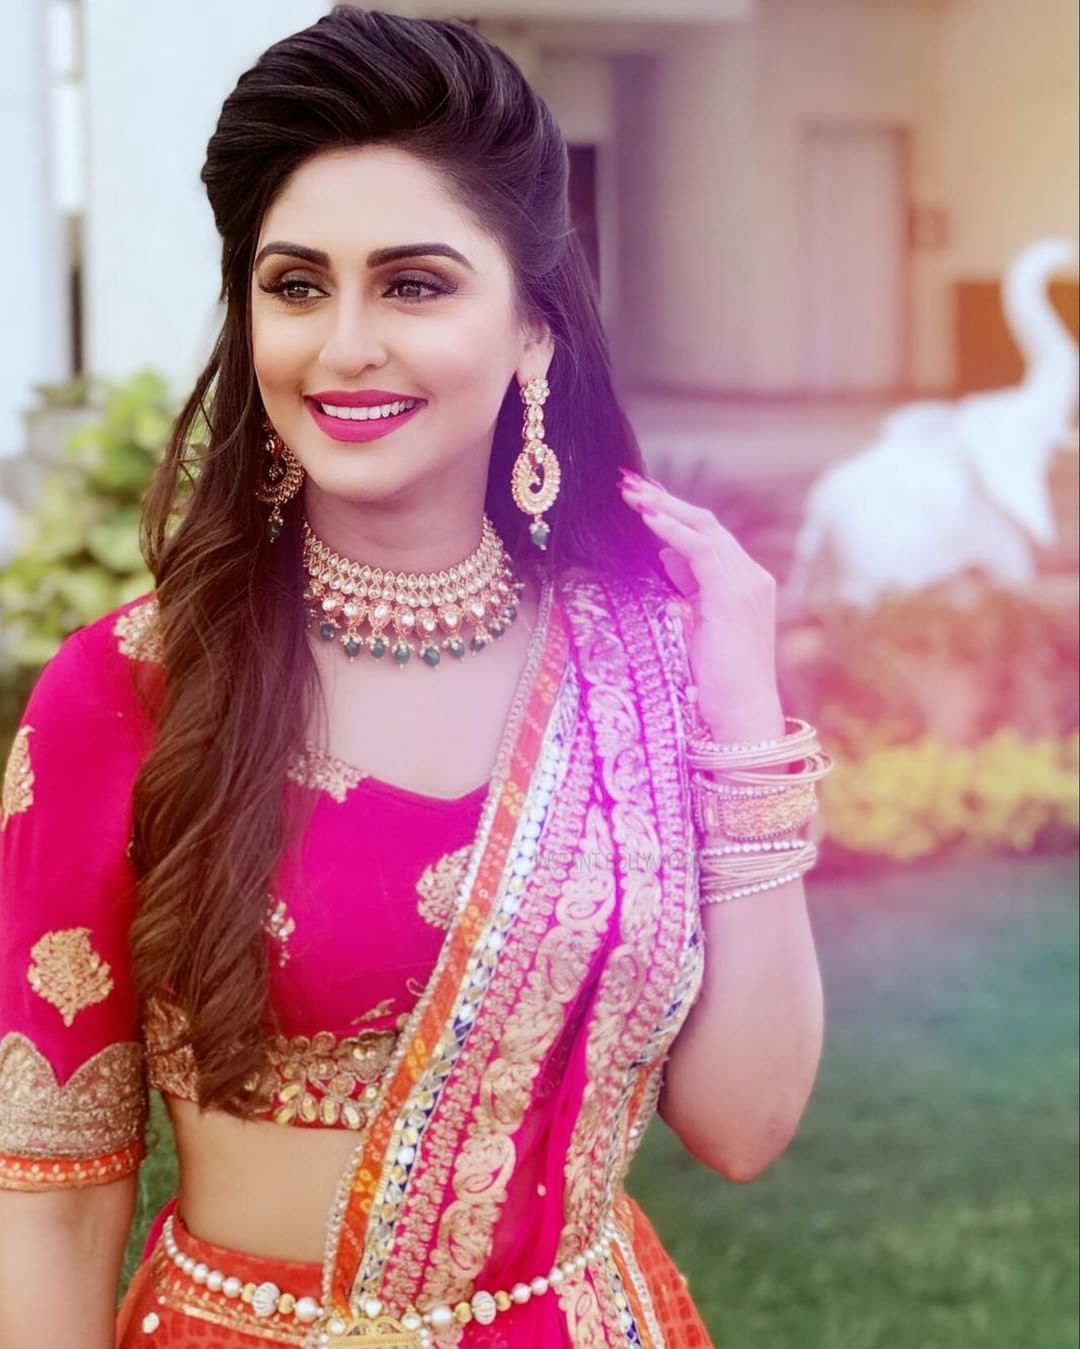 omg! krystle d'souza is looking so pretty in this indian look. she